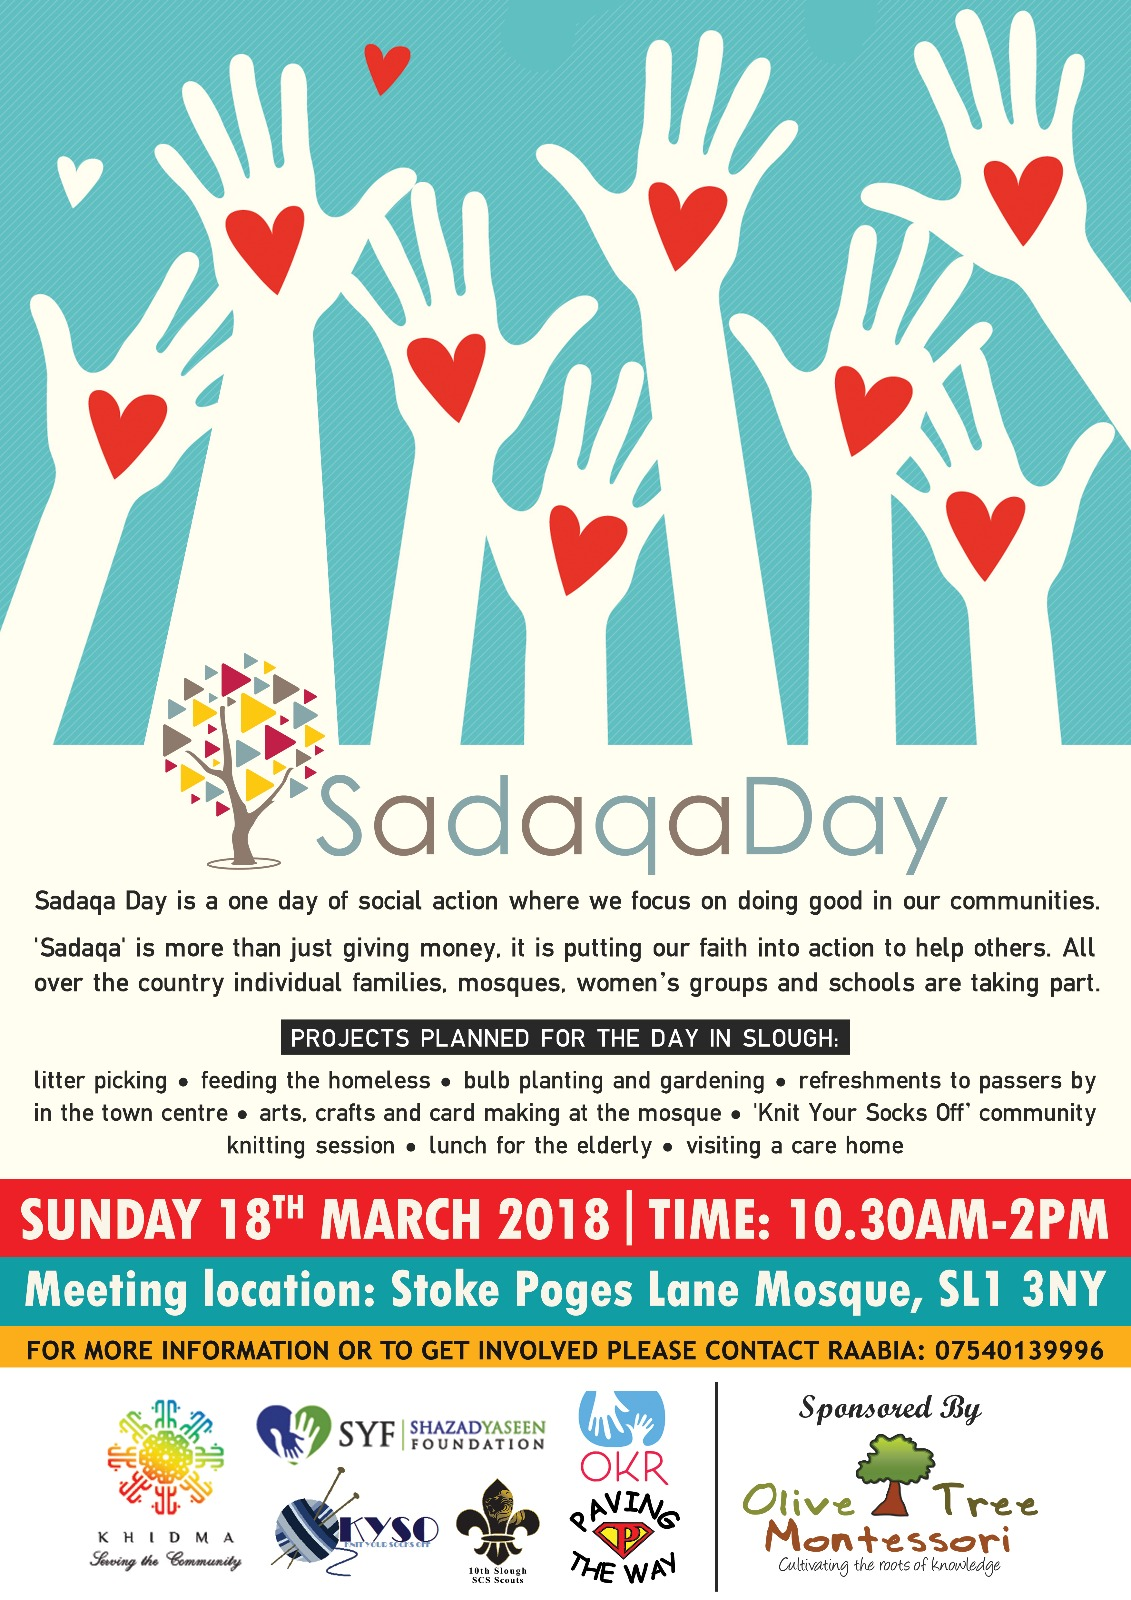 Sadaqa Day in Slough is cancelled due to the weather